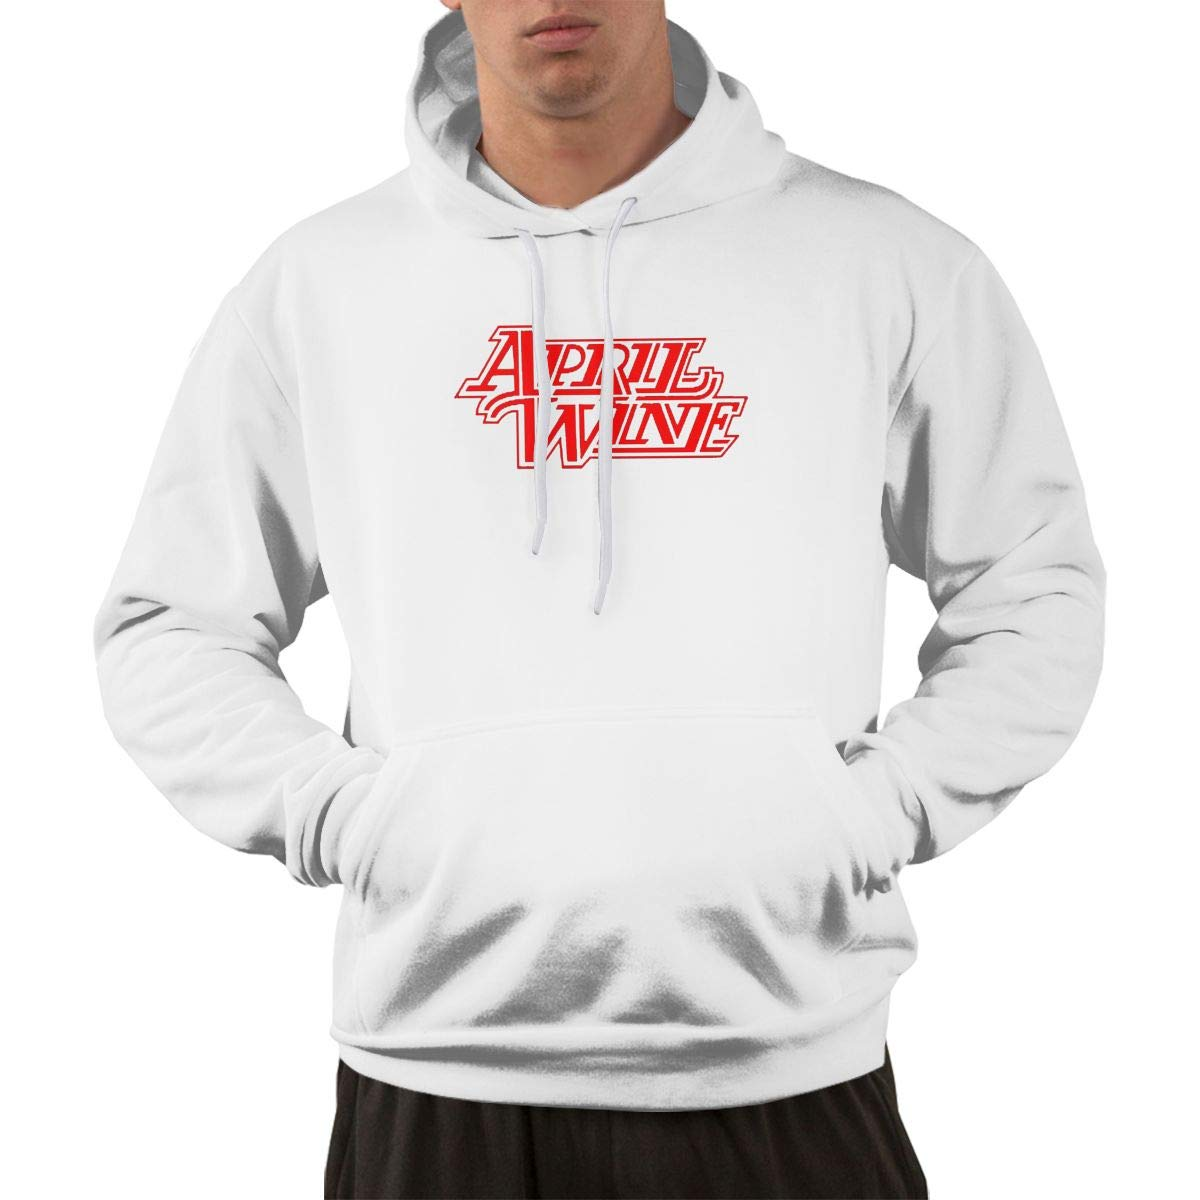 Erman S Pullover Comfortable Print April Wine Hooded Shirts With Pocket M